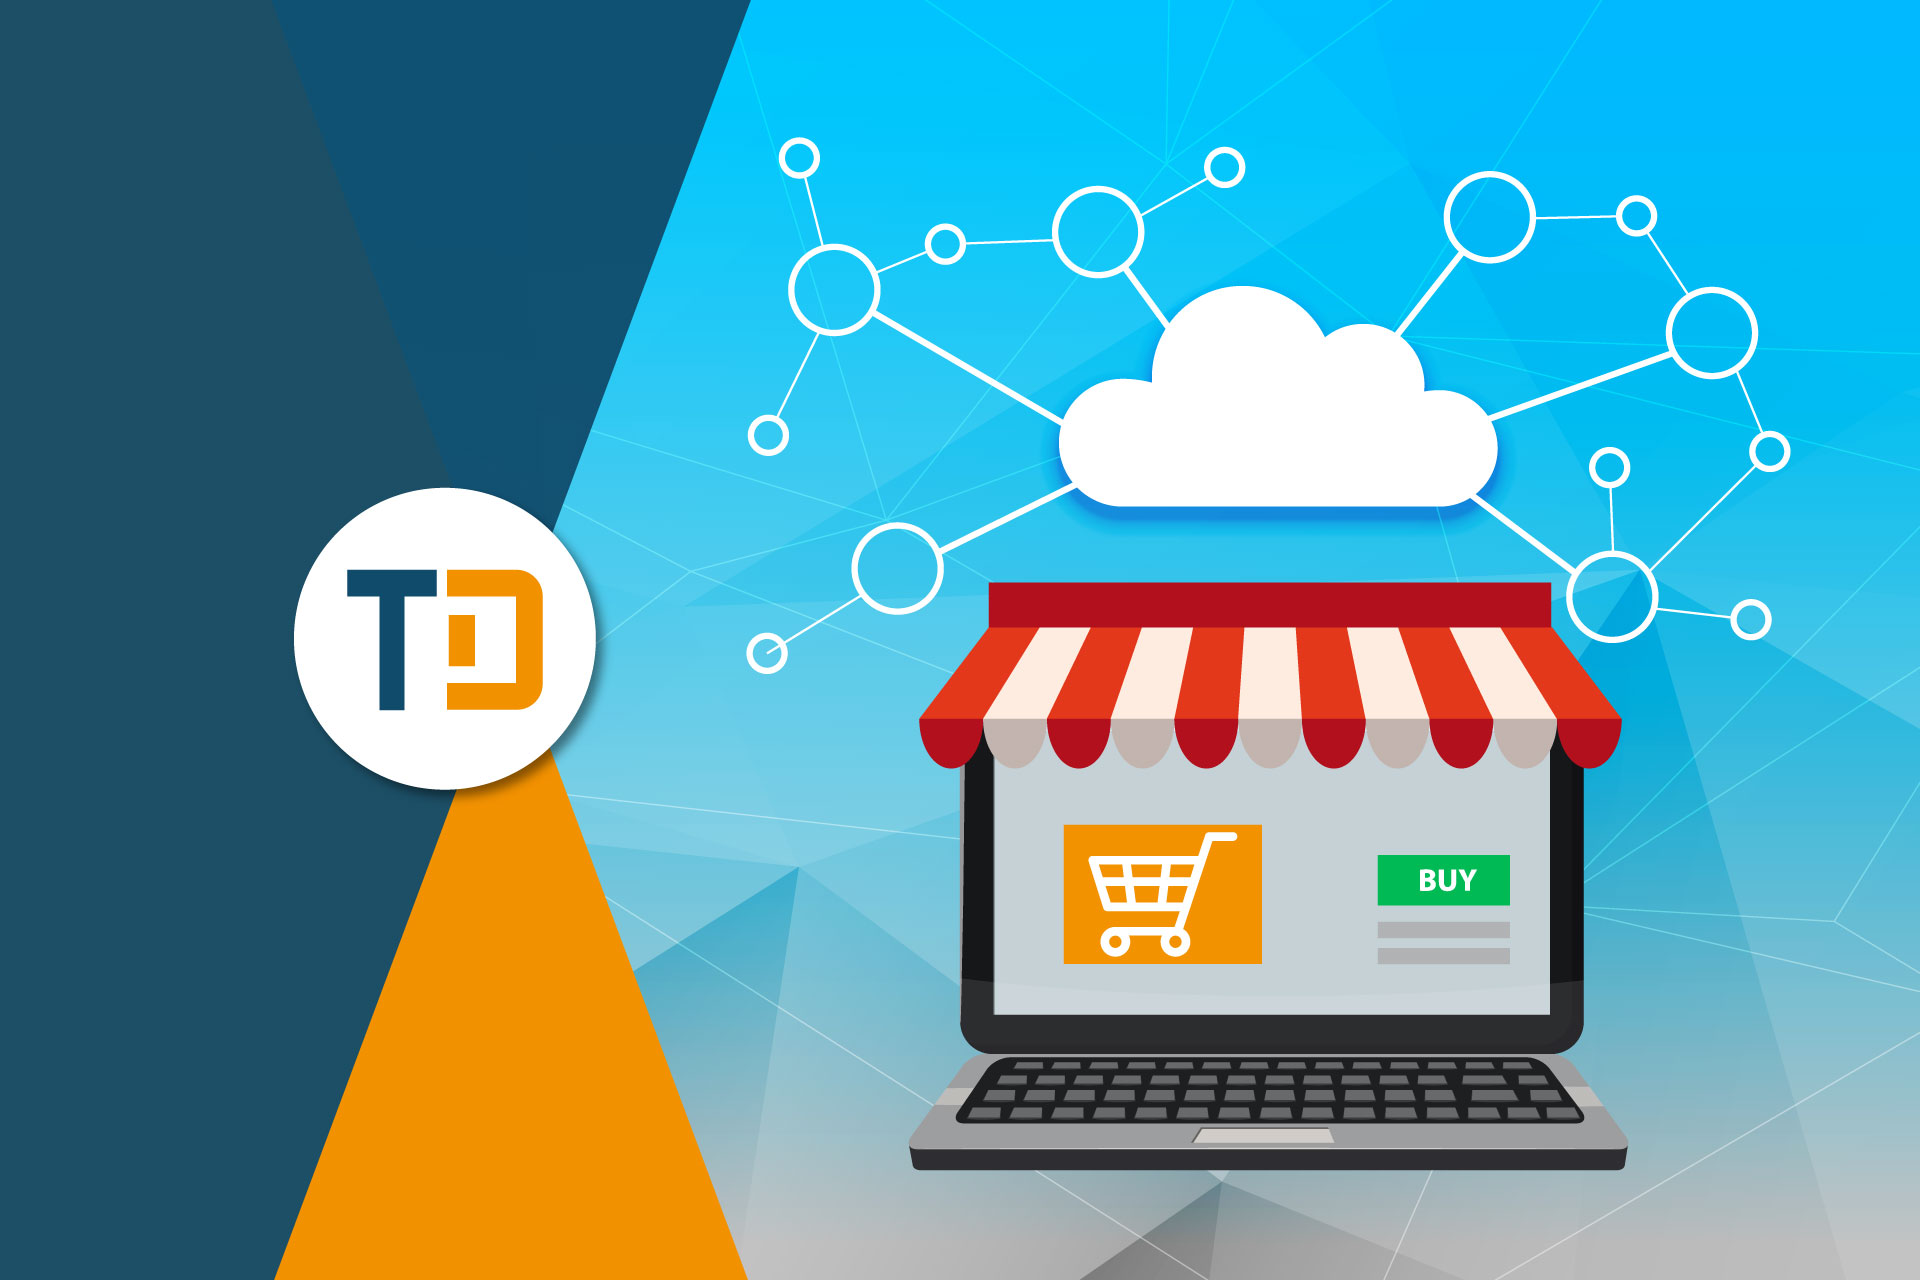 Cloud computing per e-commerce, tecnologia utilizzata nel software gestionale ecommerce Telnet Data